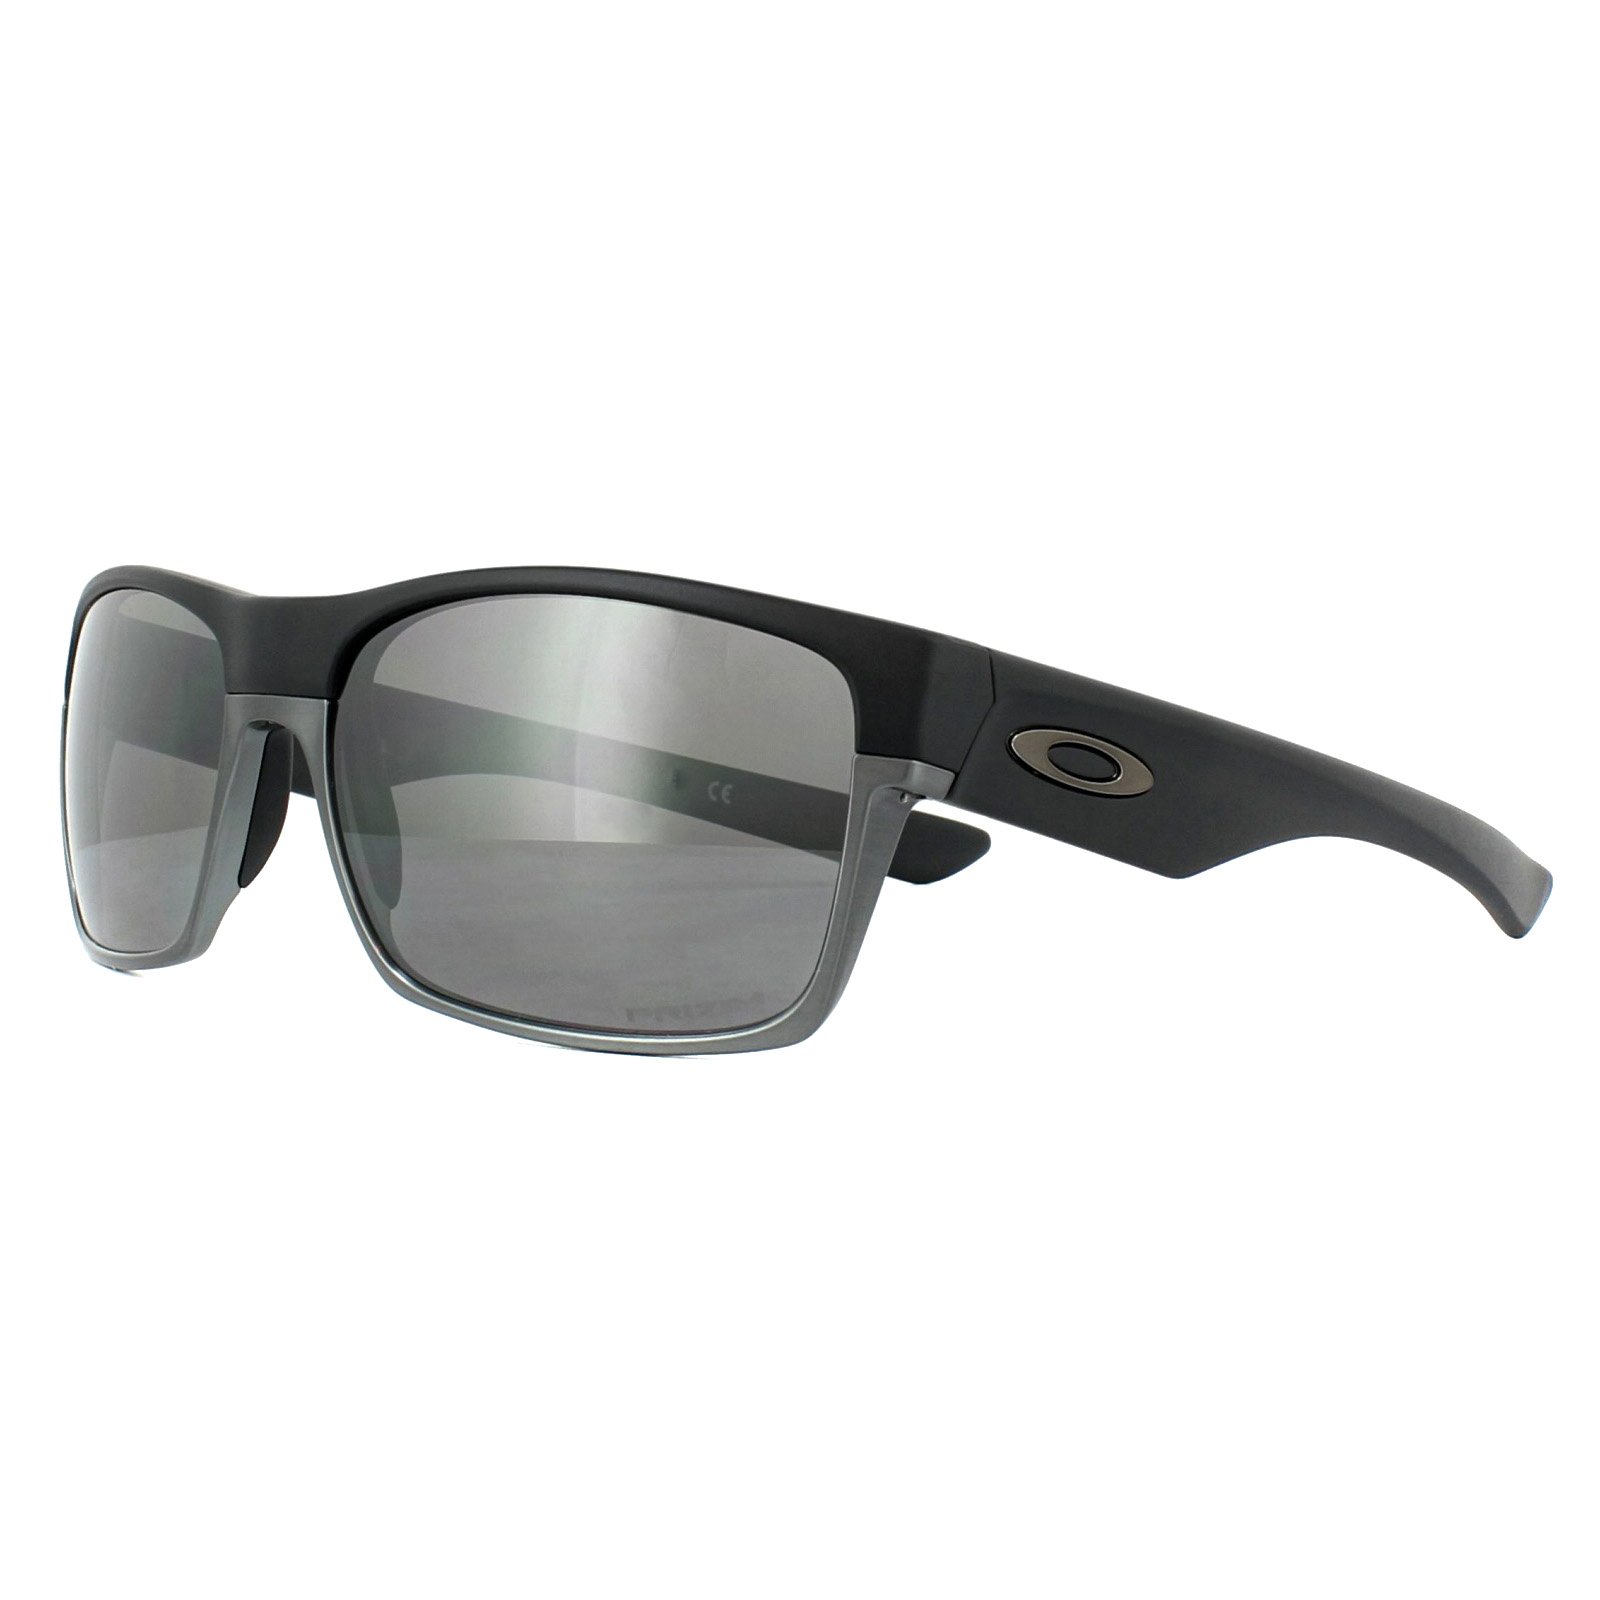 1eaf210171 Sentinel Oakley Sunglasses TwoFace OO9189-38 Matt Black Prizm Daily  Polarized